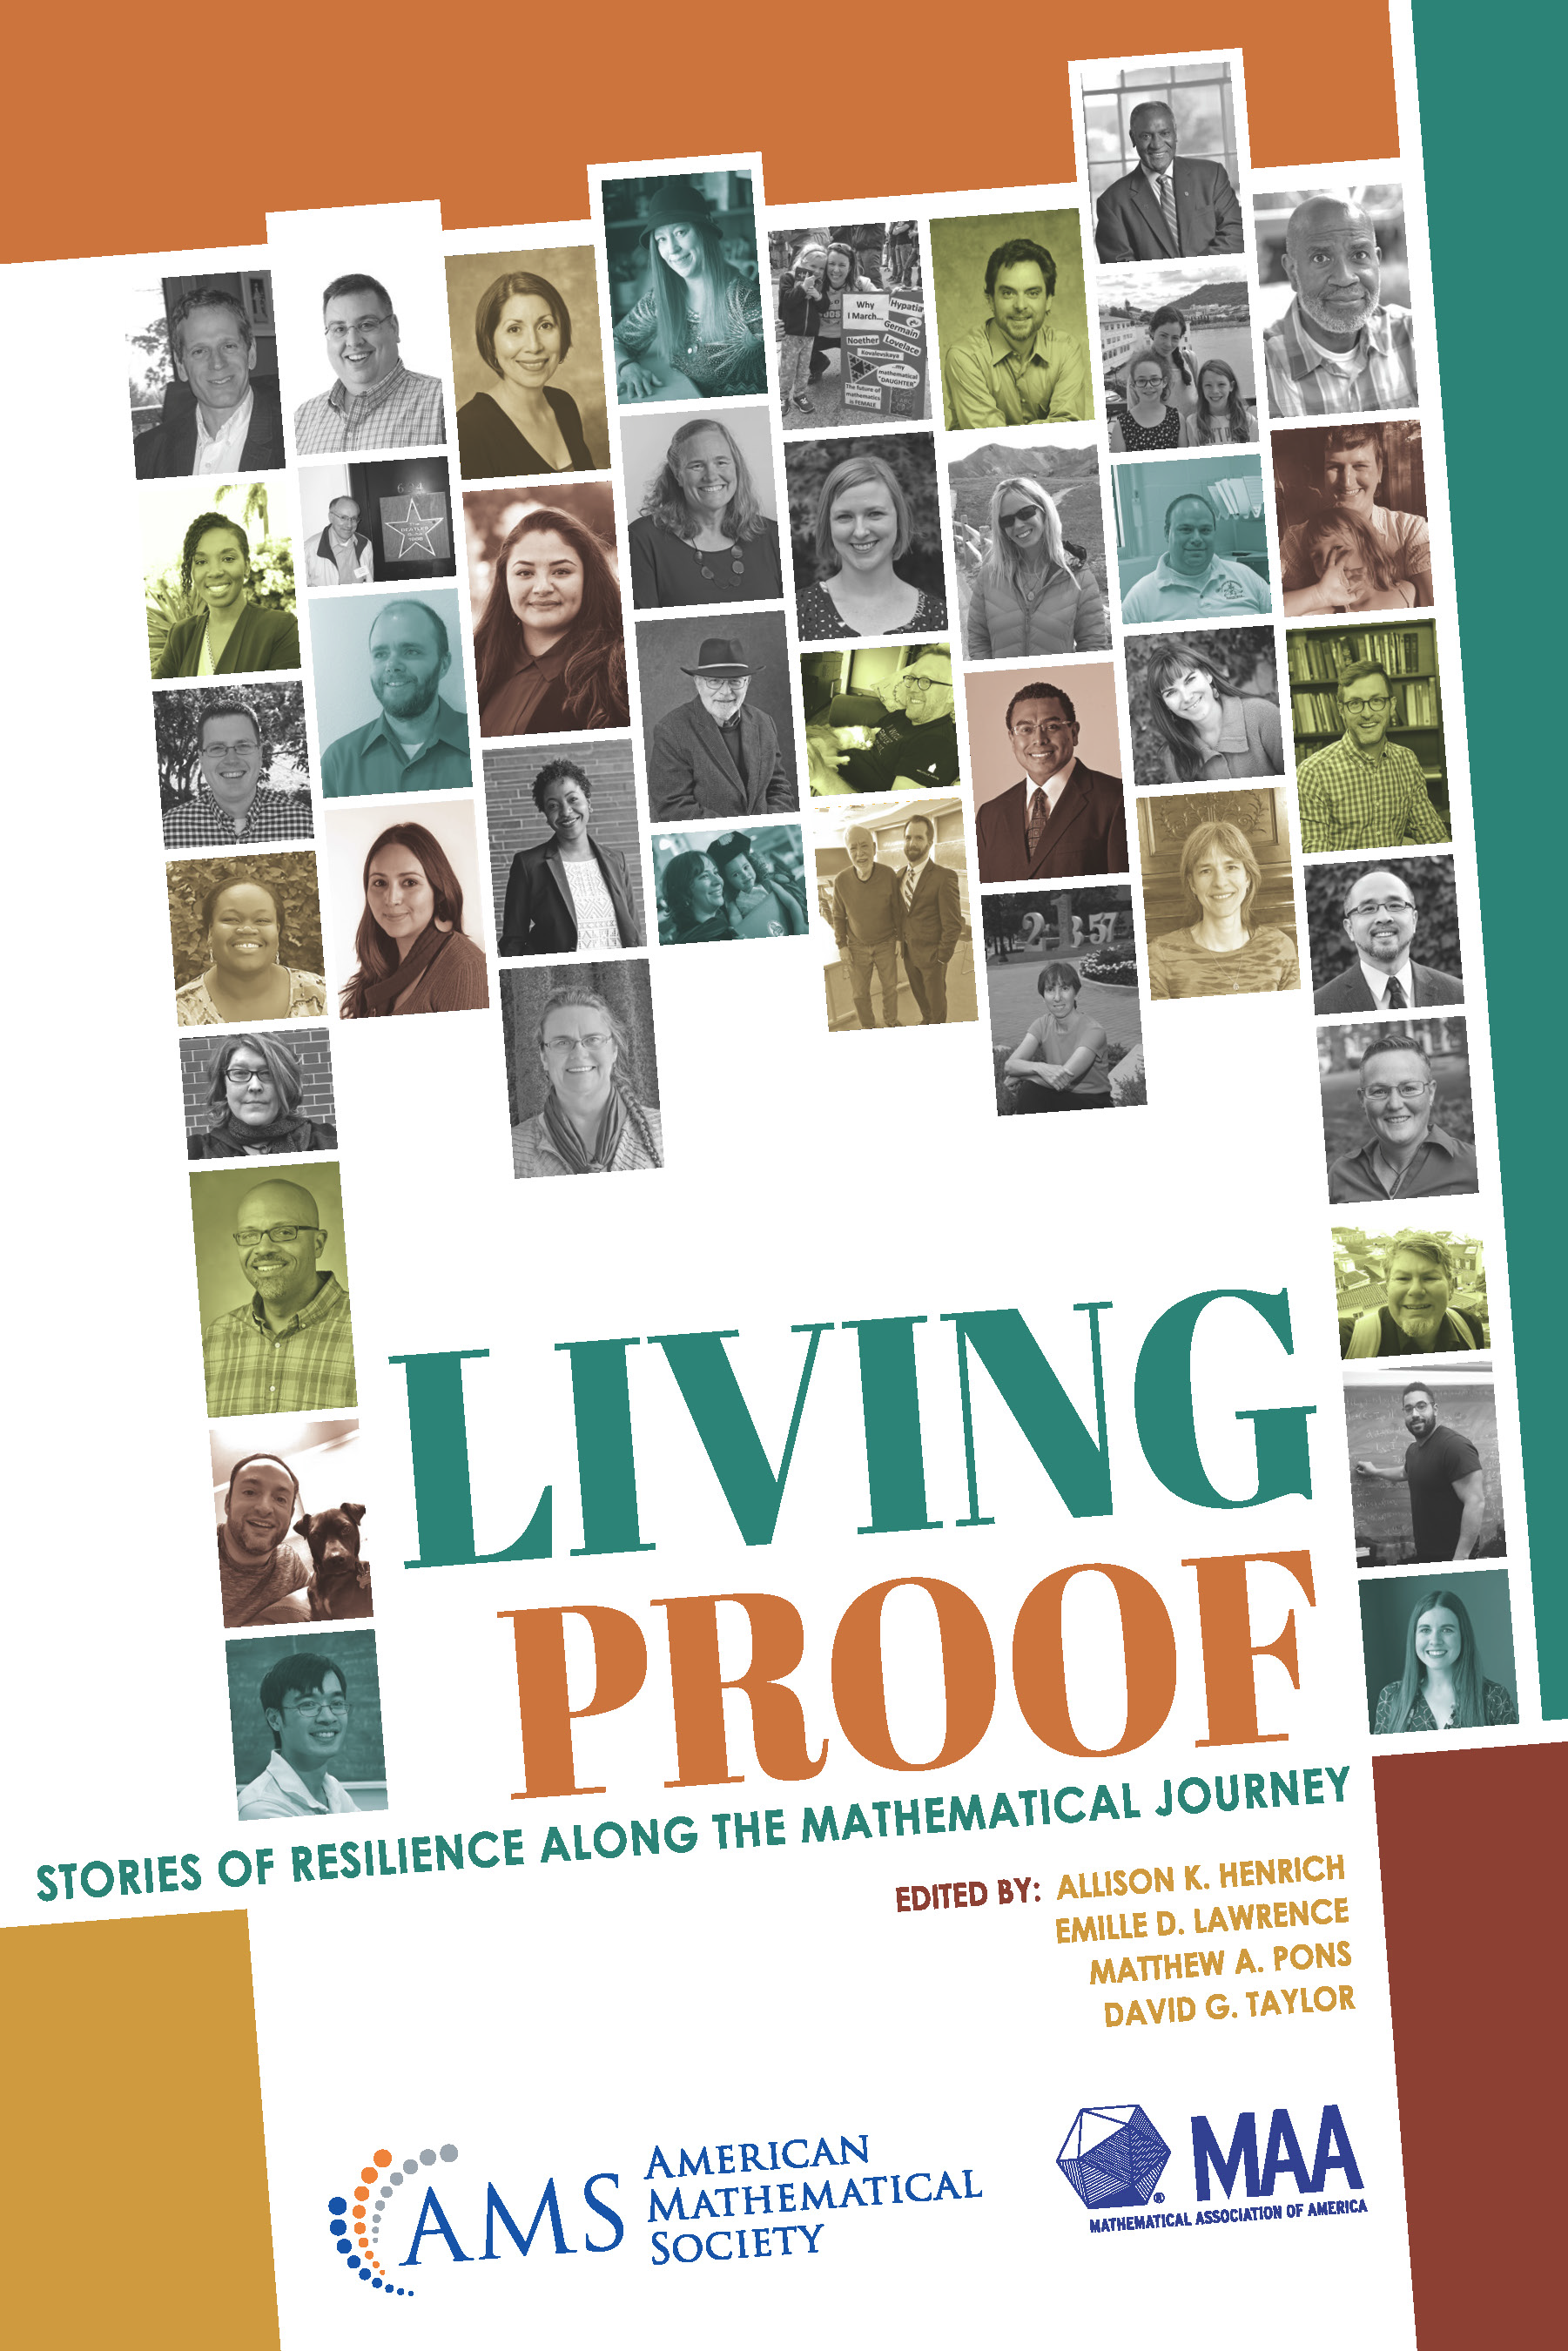 LivingProofcover.png